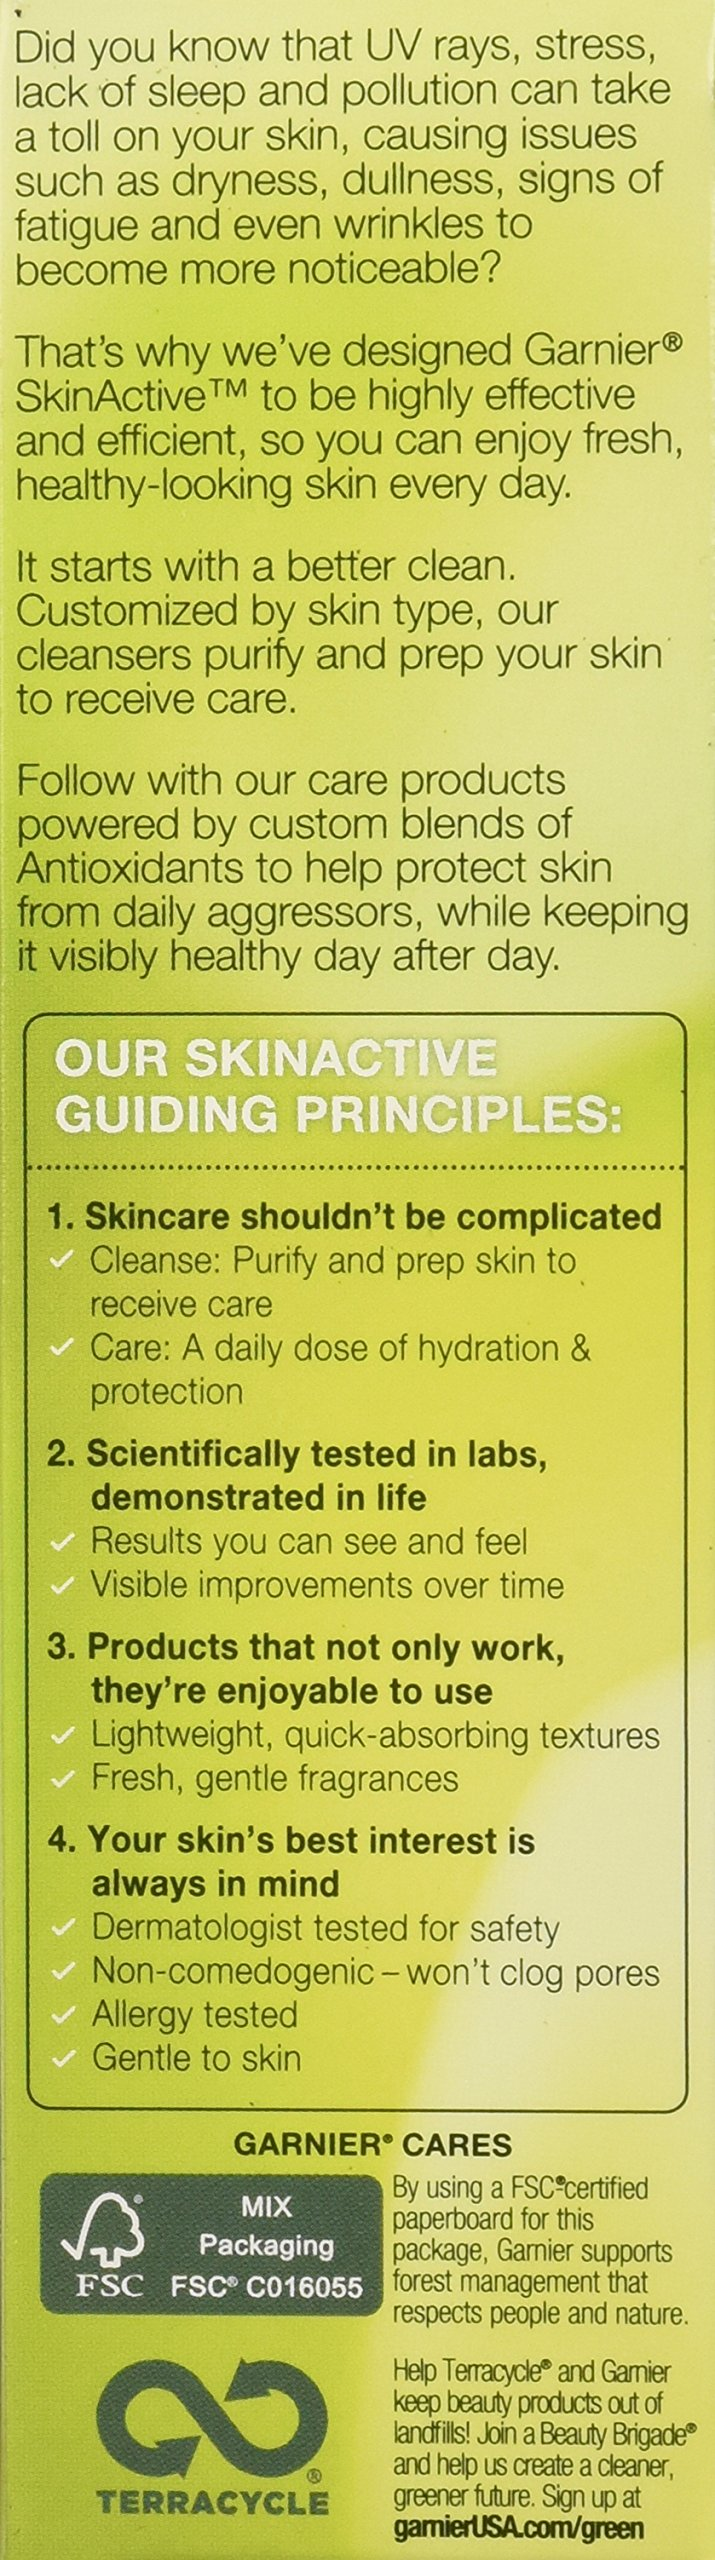 Garnier SkinActive Clearly Brighter SPF 30 Face Moisturizer with Vitamin C, 2.5 Ounces by Garnier